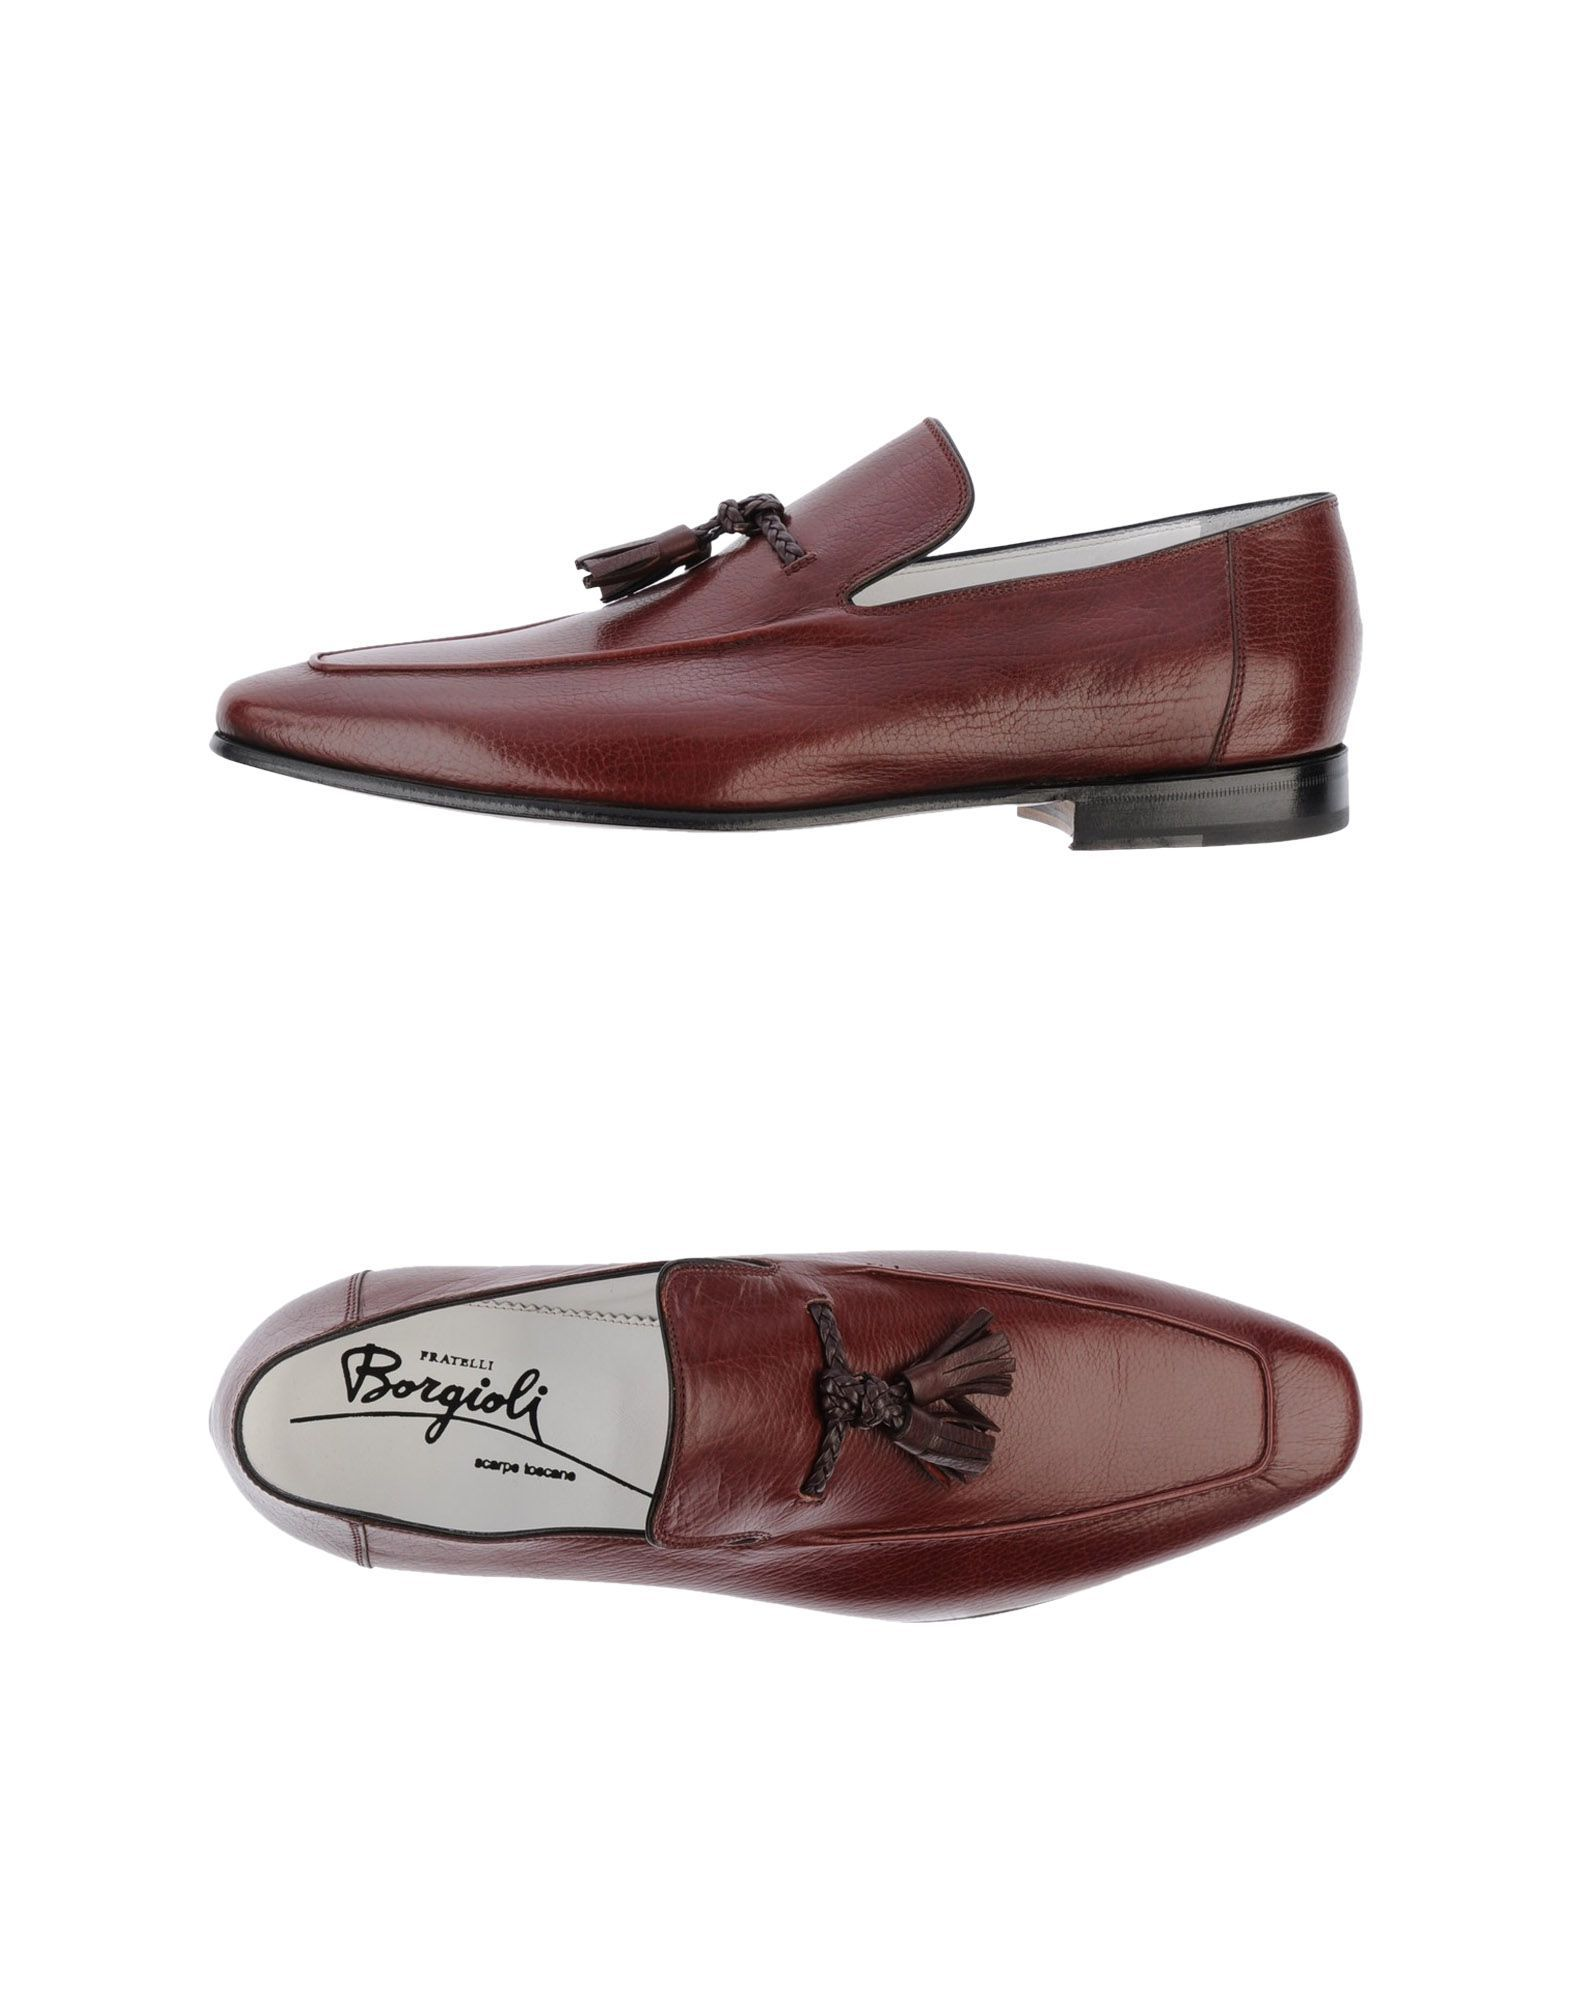 Borgioli Men - Footwear - Moccasins Borgioli on YOOX